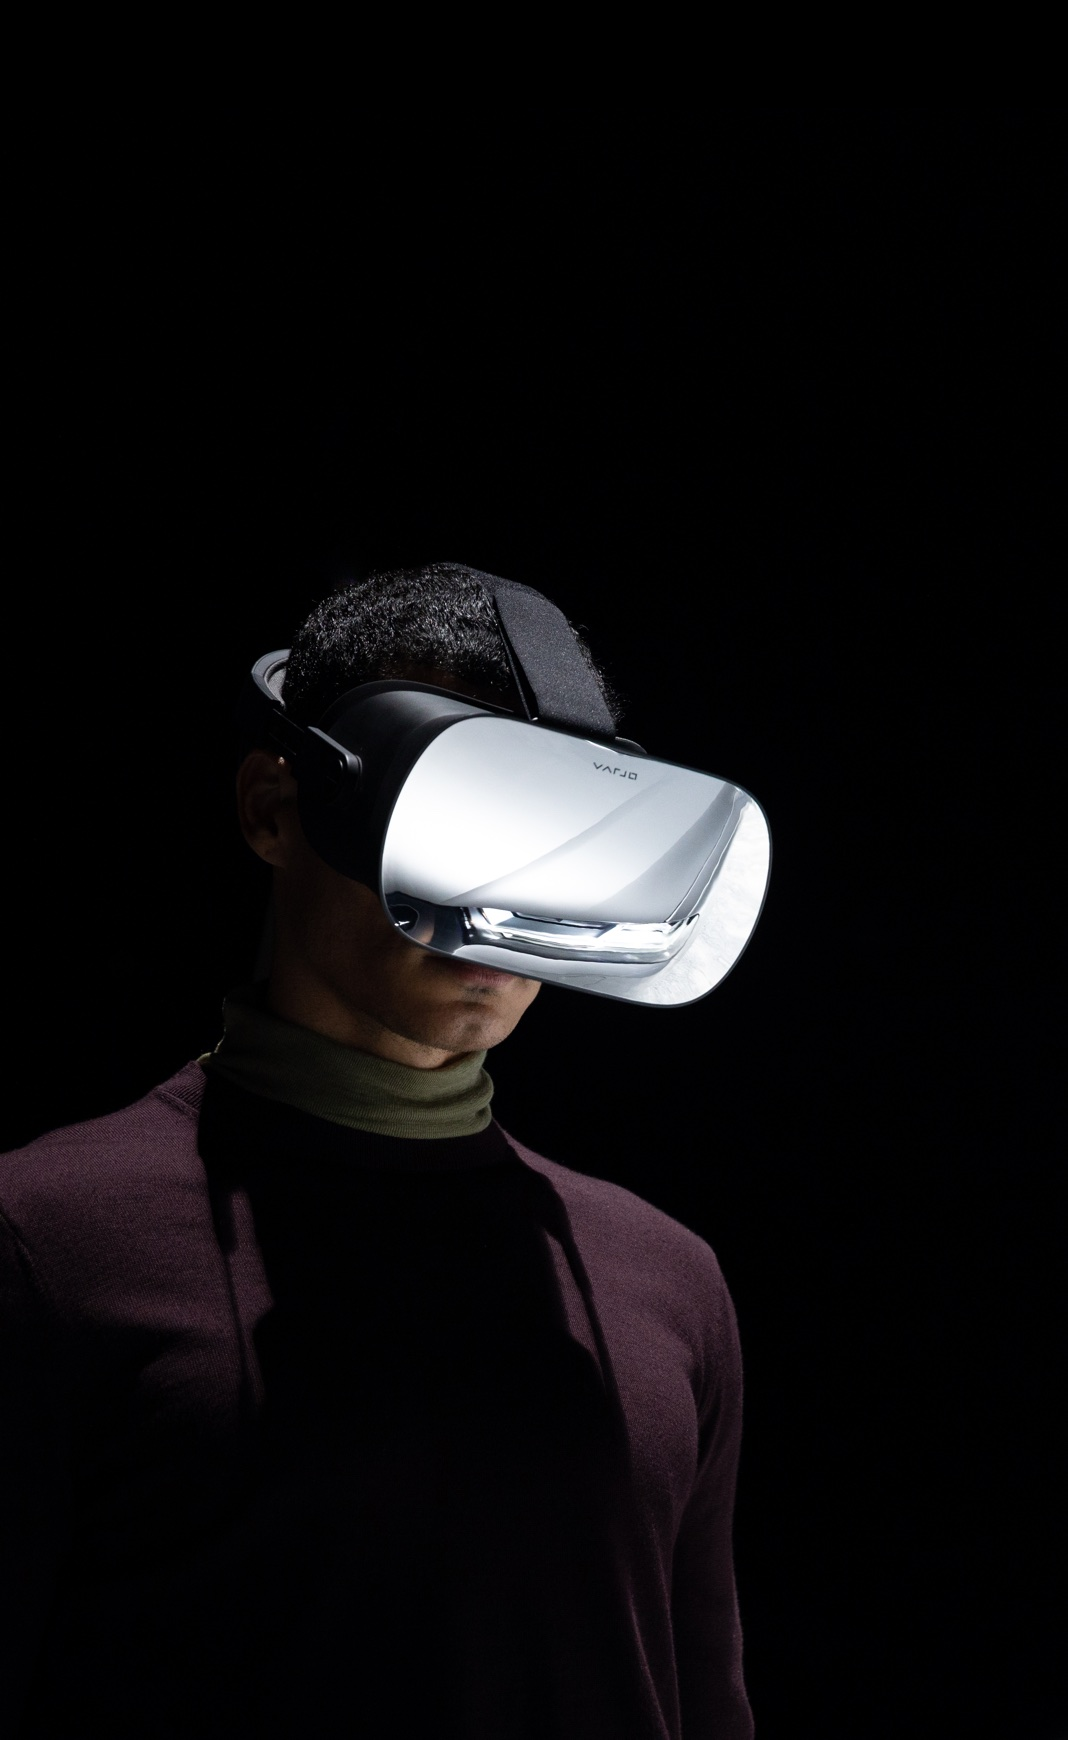 The world's most advanced virtual and mixed reality devices